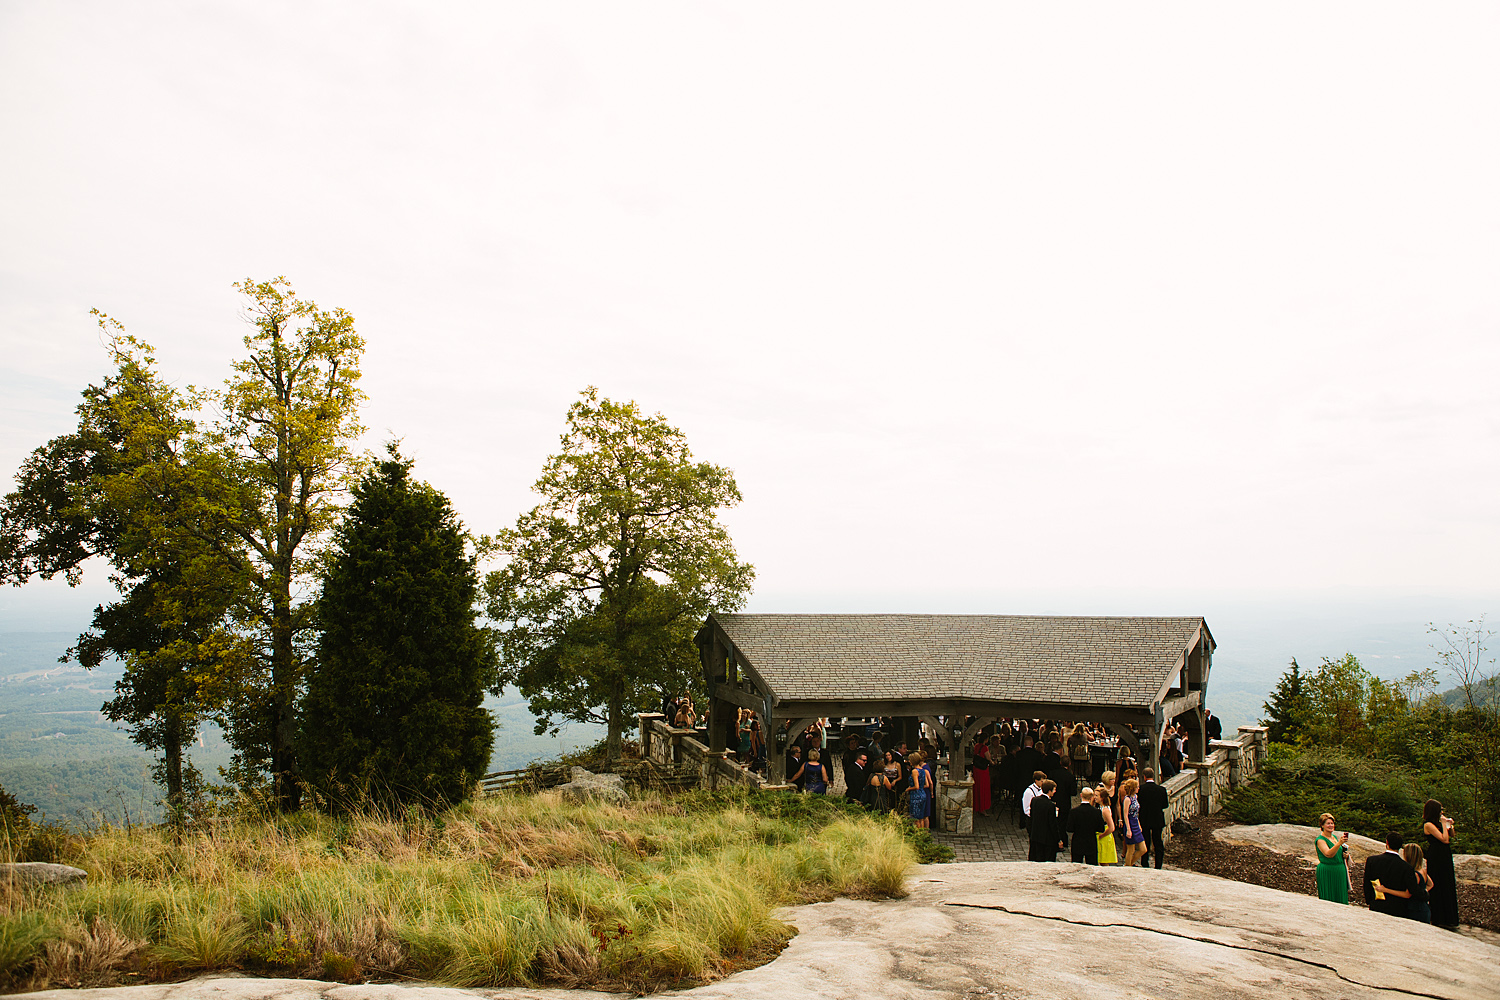 Jeremy-Russell-Cliffs-At-Glassy-Chapel-Wedding-15-15.jpg